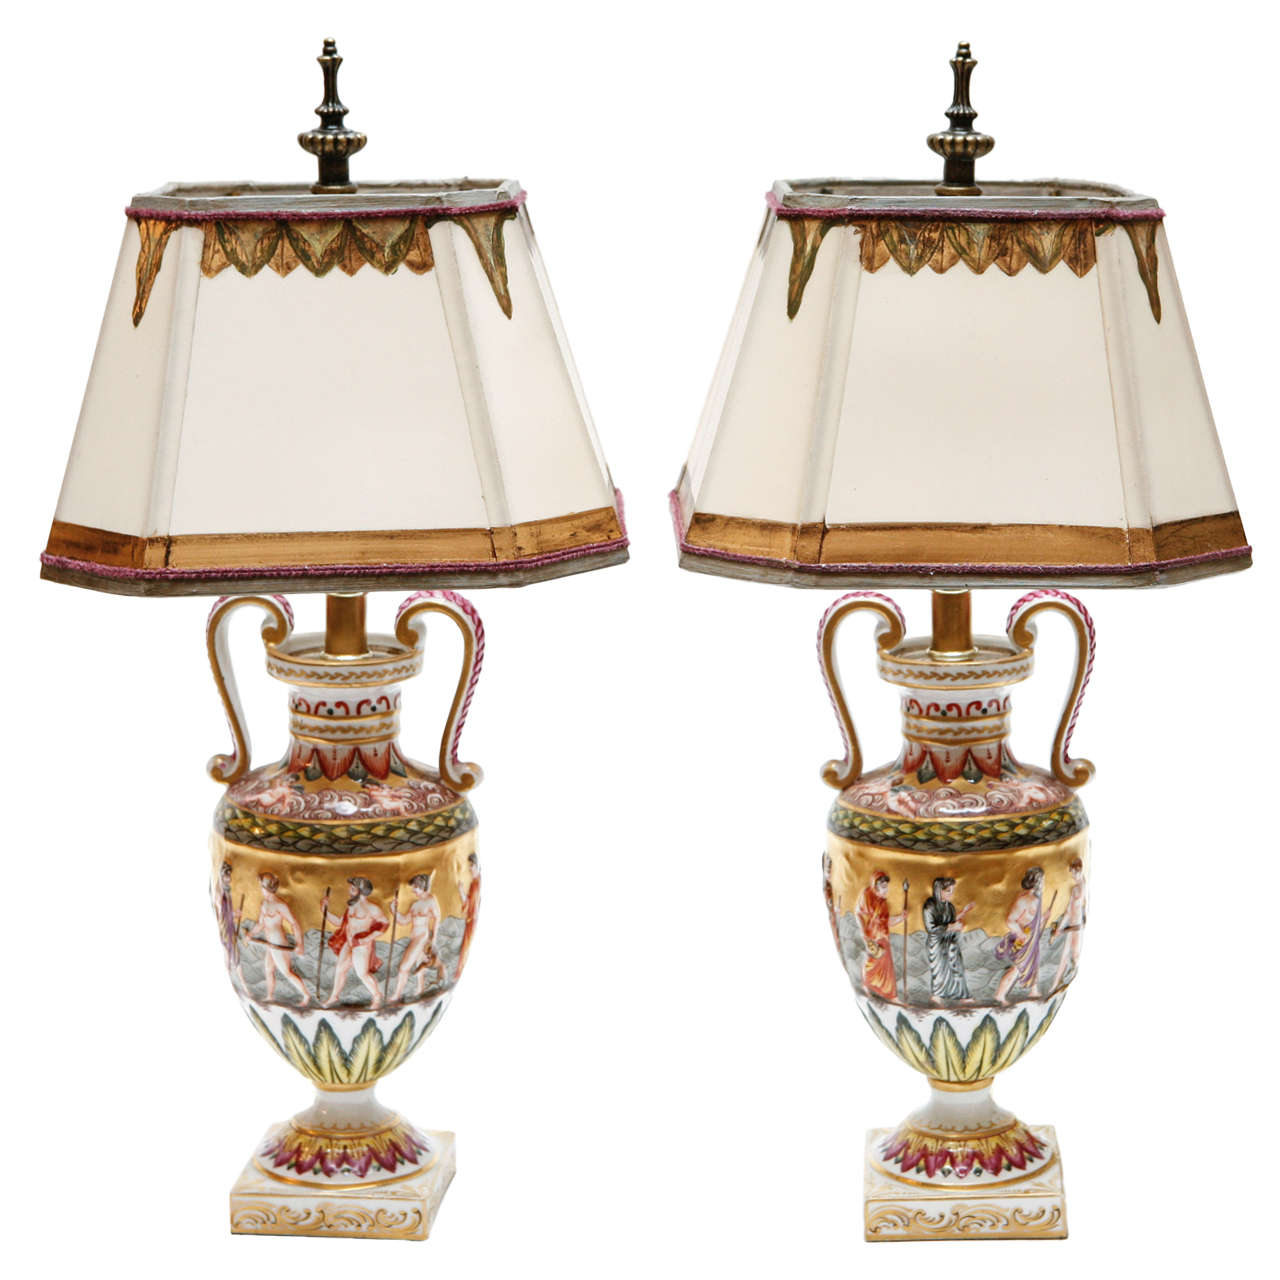 Pair of 19th Century Italian Capodimonte Lamps